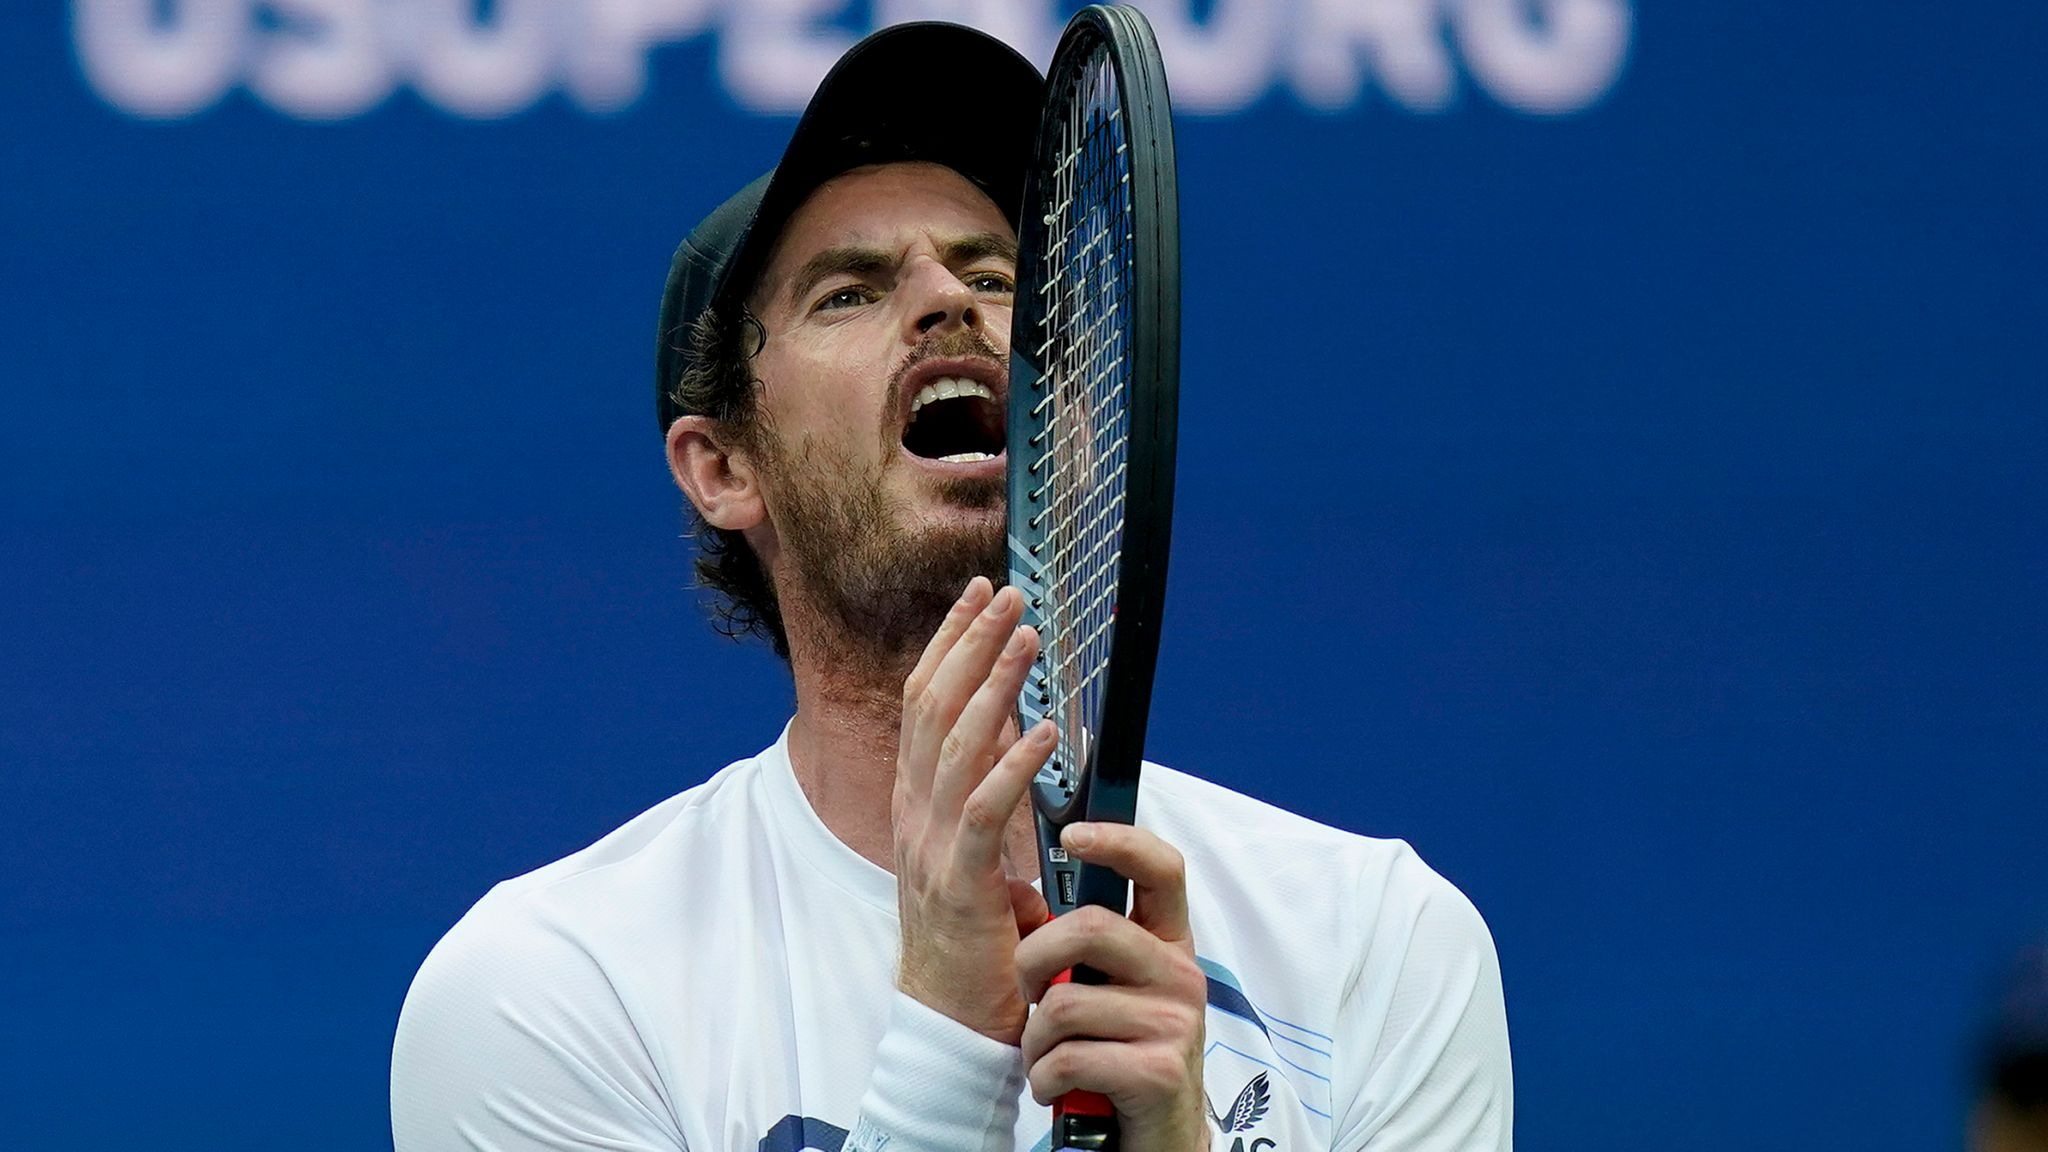 Andy Murray Exits Rennes Open After Losing to Roman Safiullin in Last 16